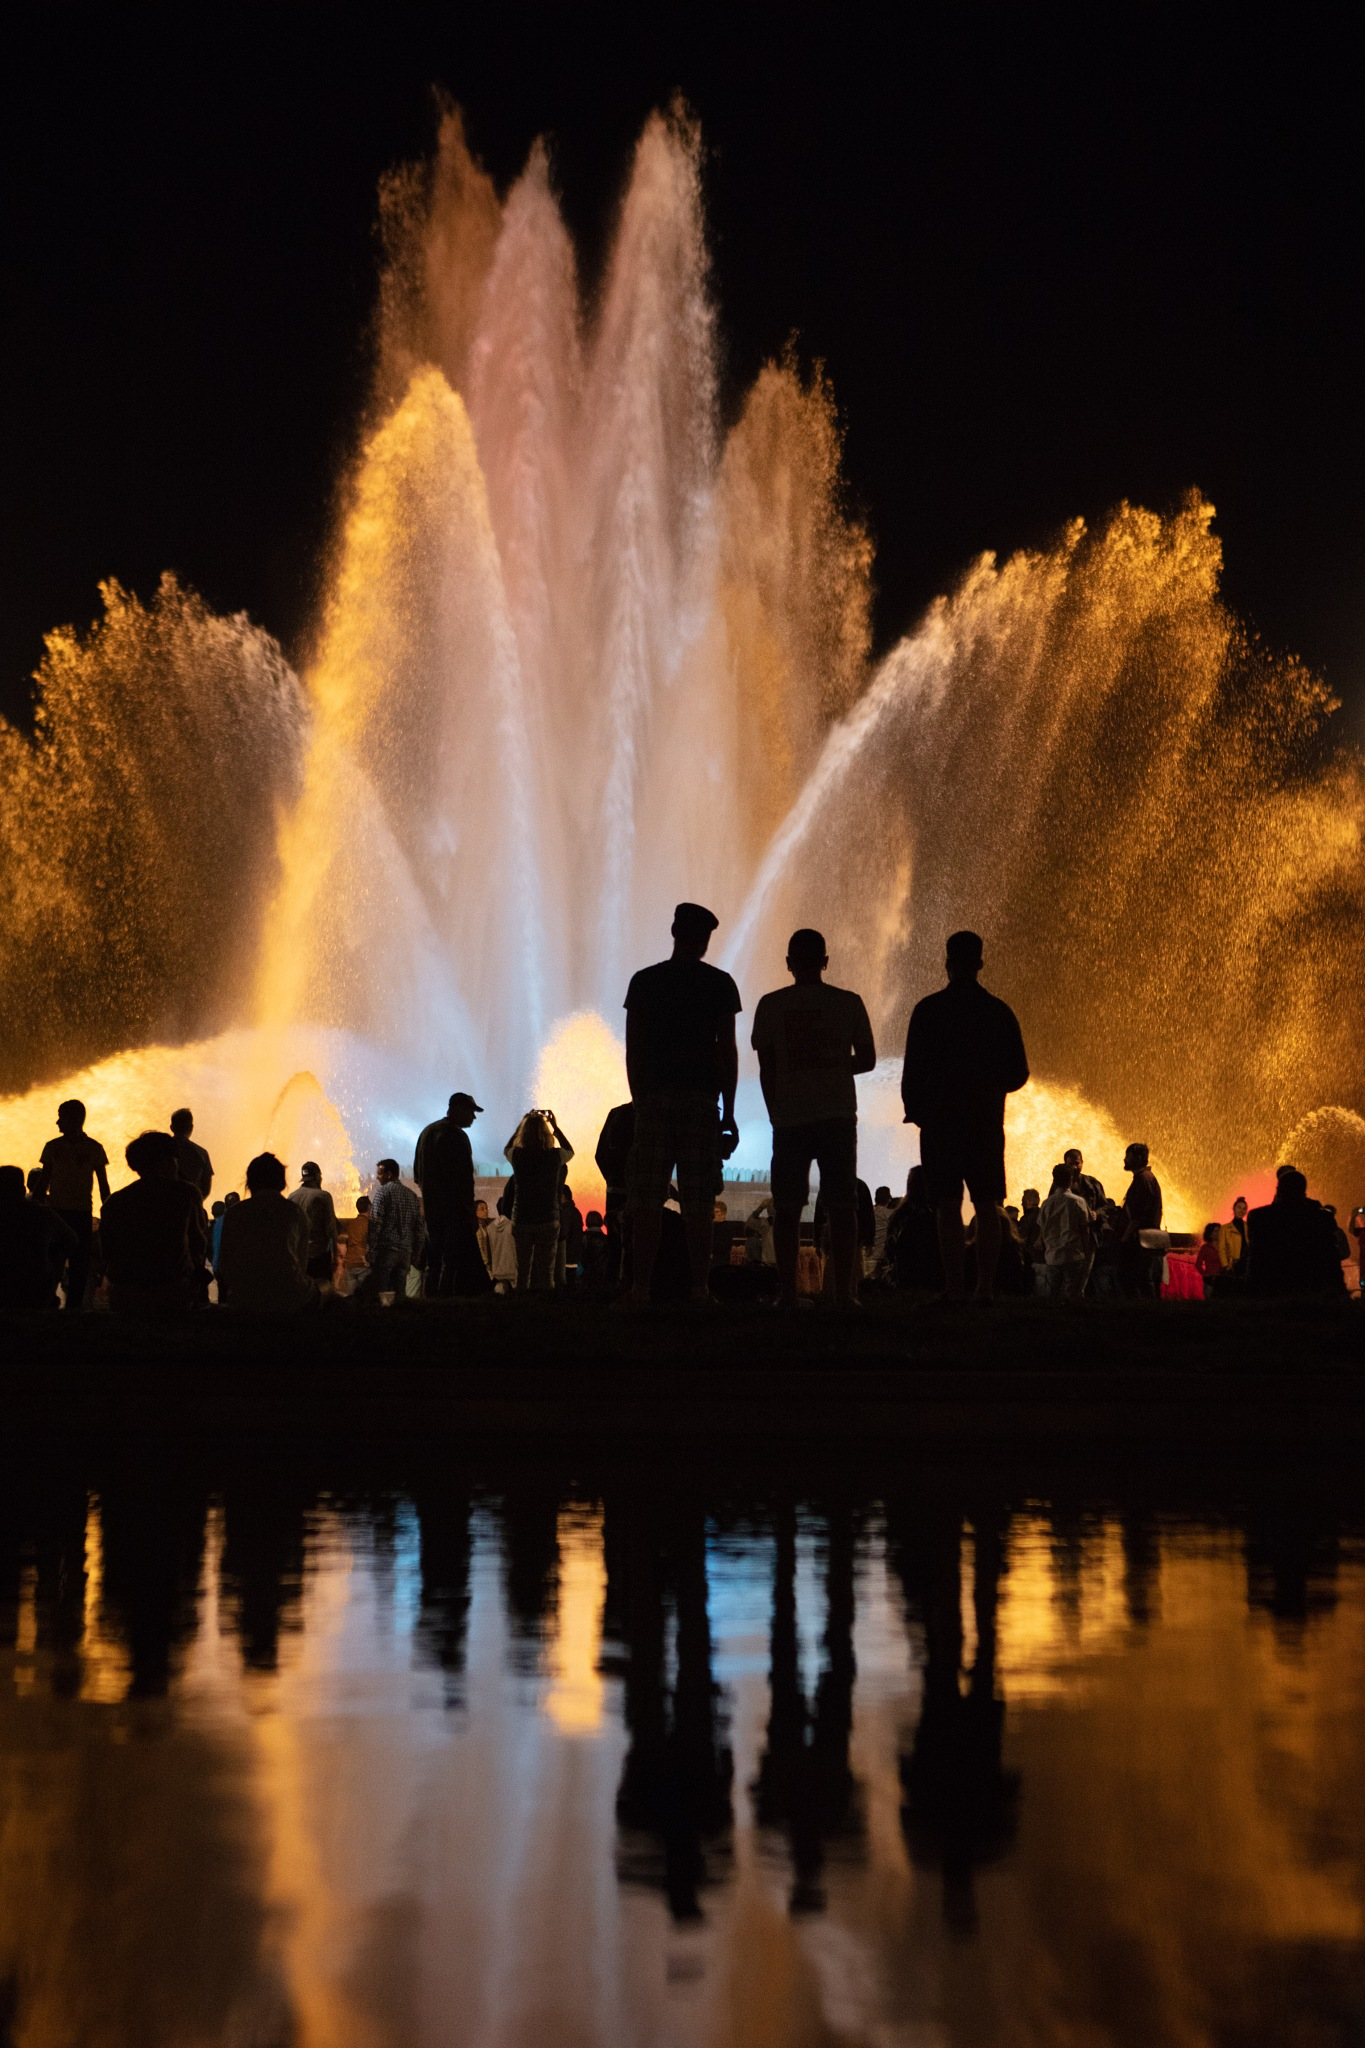 Magic Fountain by VAMPhotography